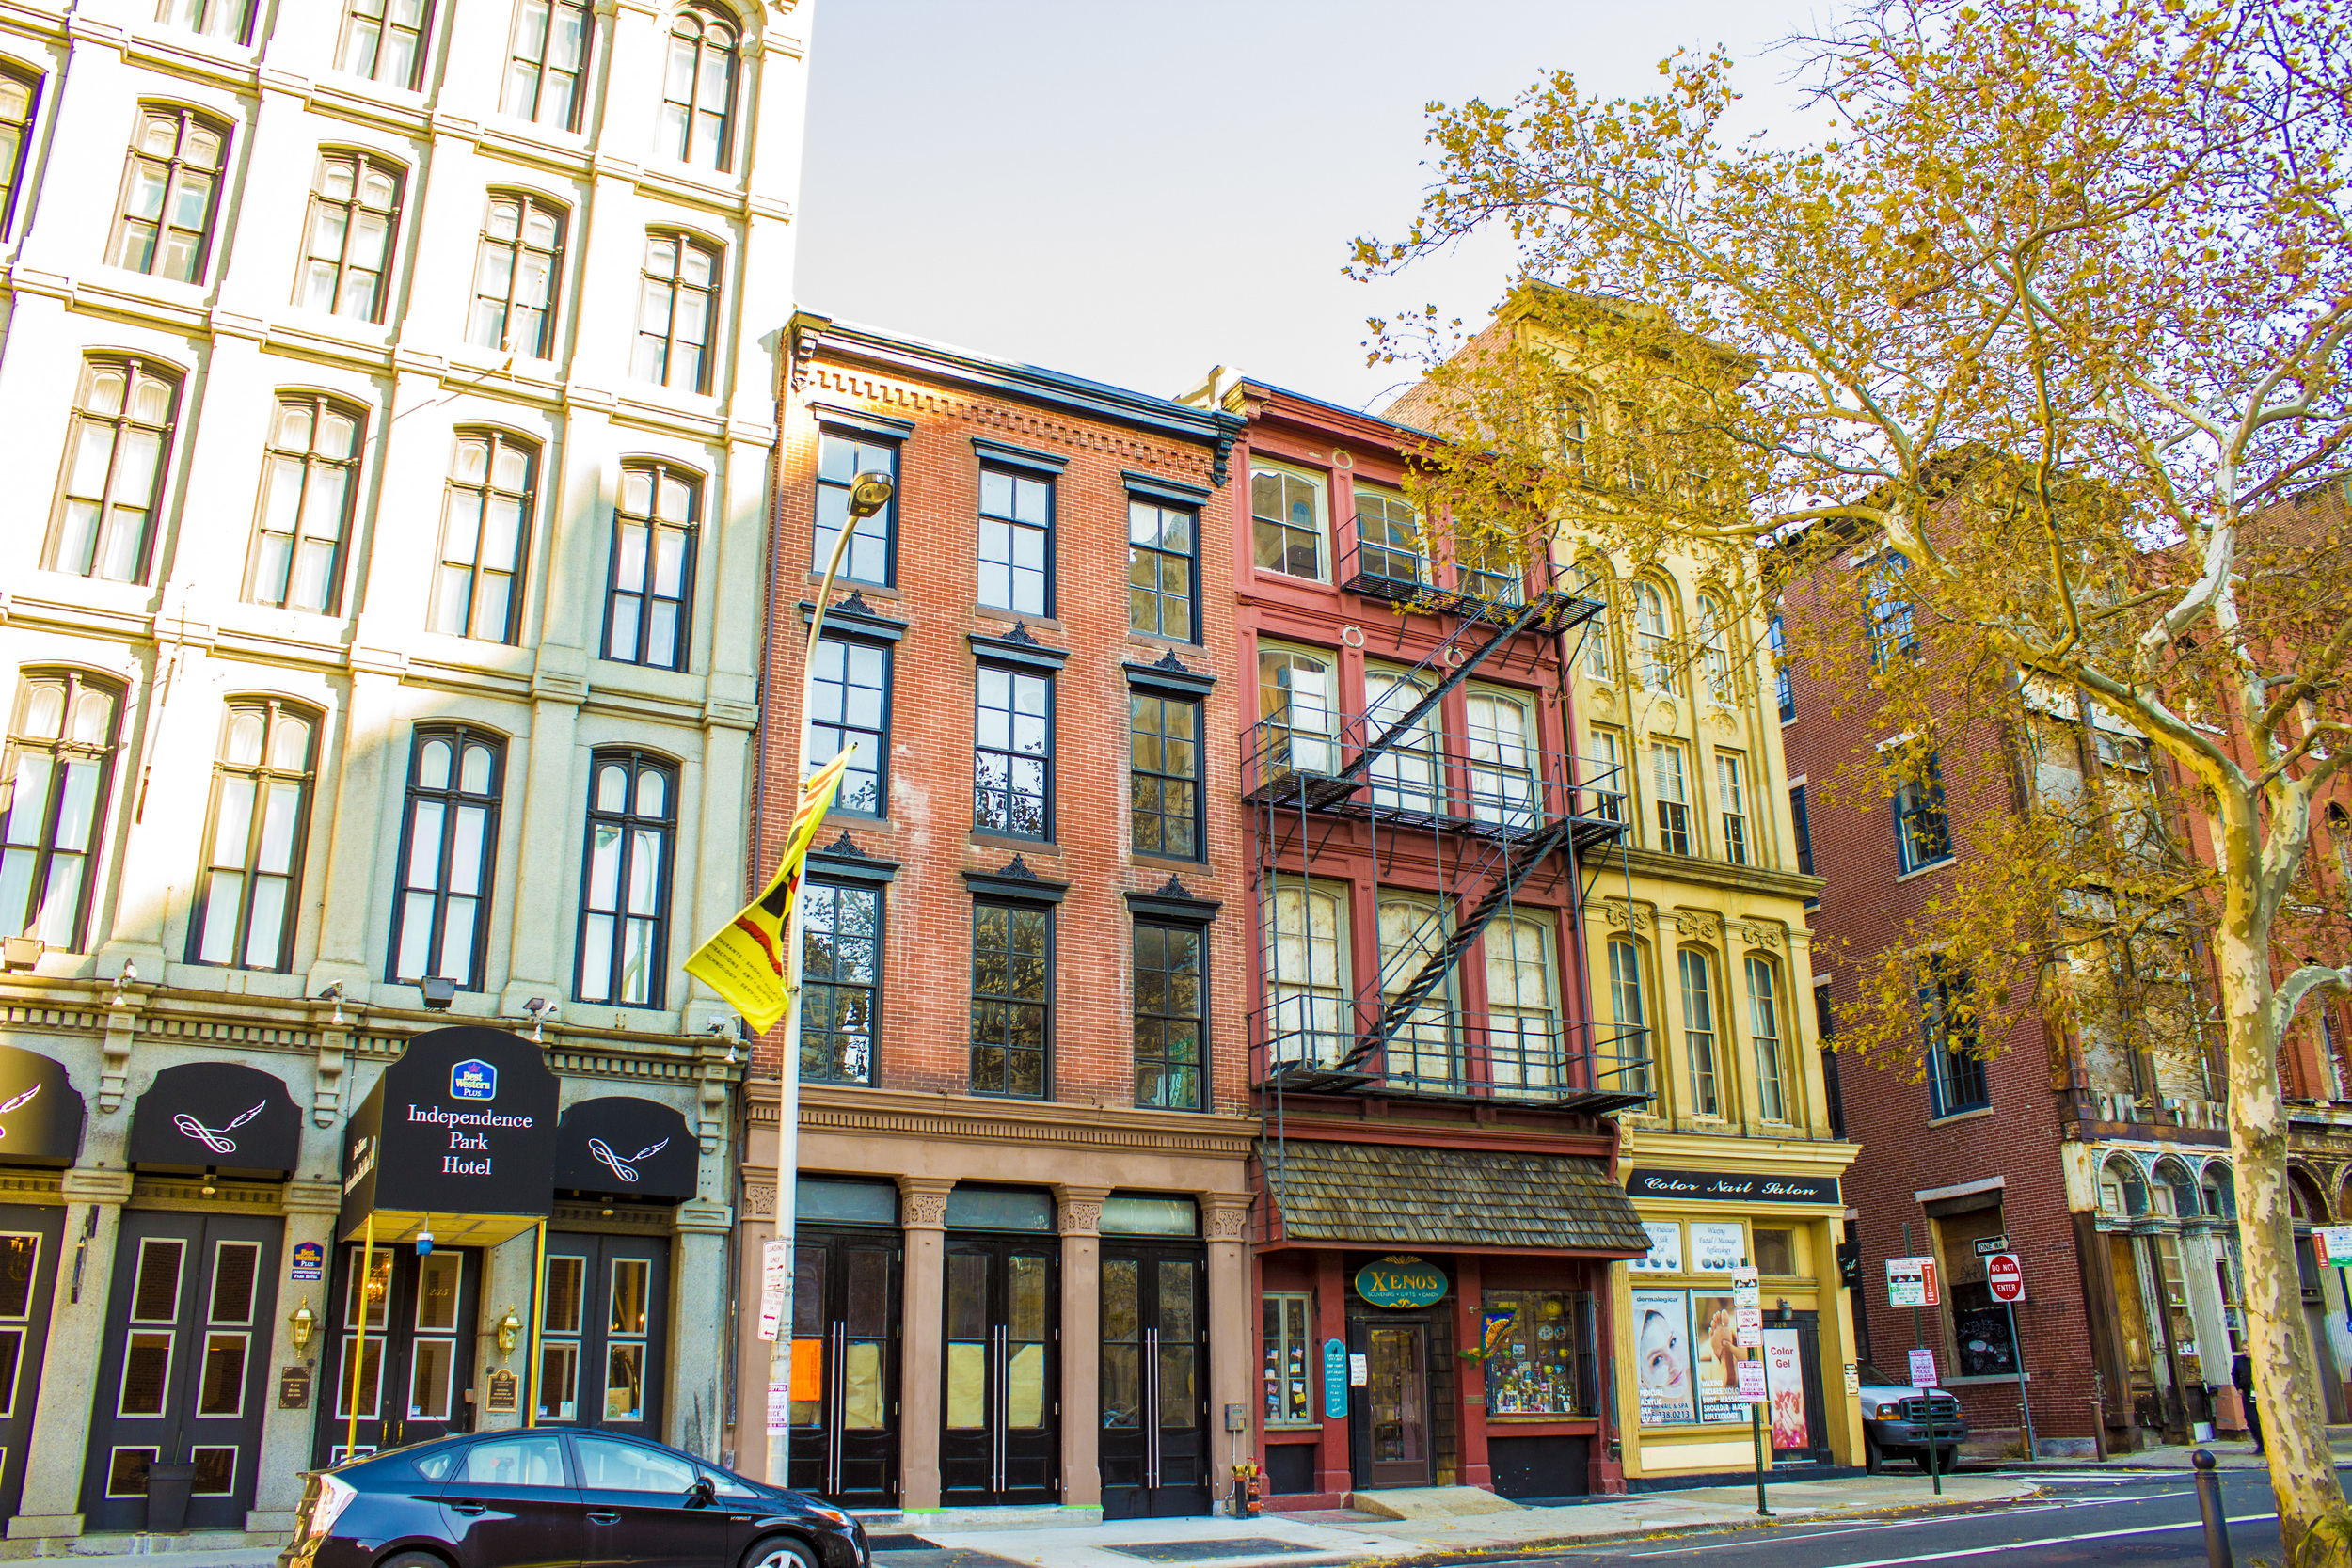 233 CHESTNUT STREET    We performed design, procurement and construction management services on this project.